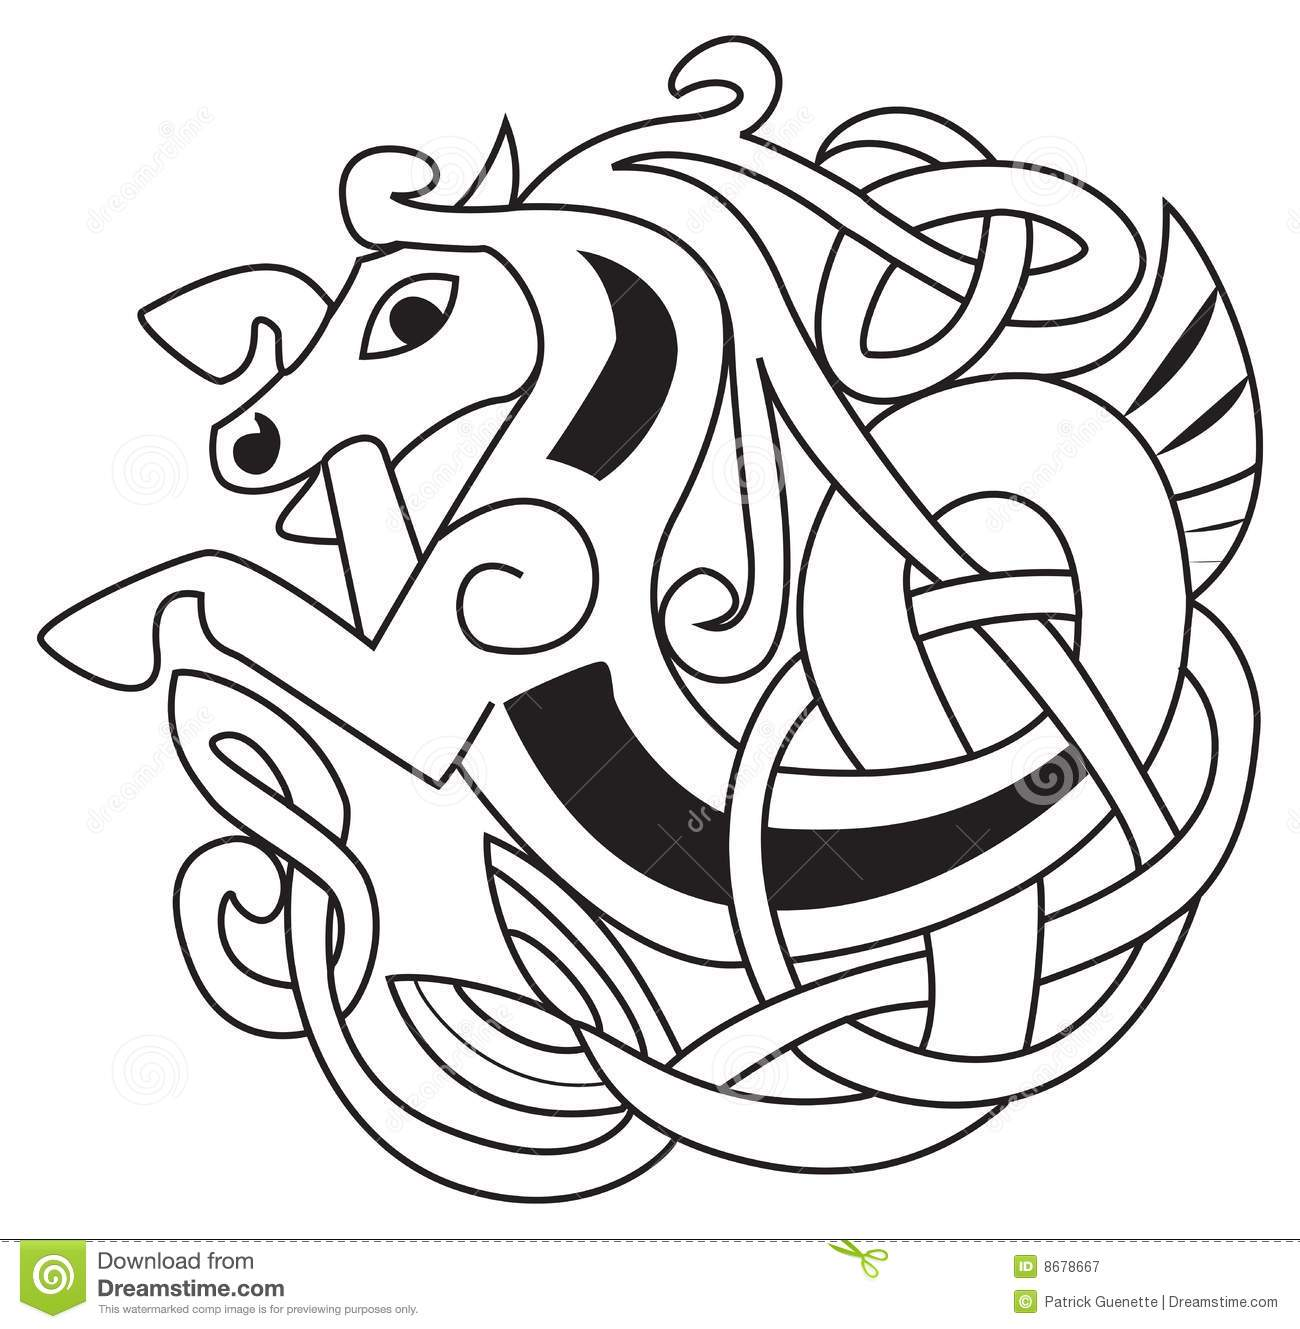 celtic horse royalty free stock photography image 8678667 shamrock vector art free shamrock vector image free